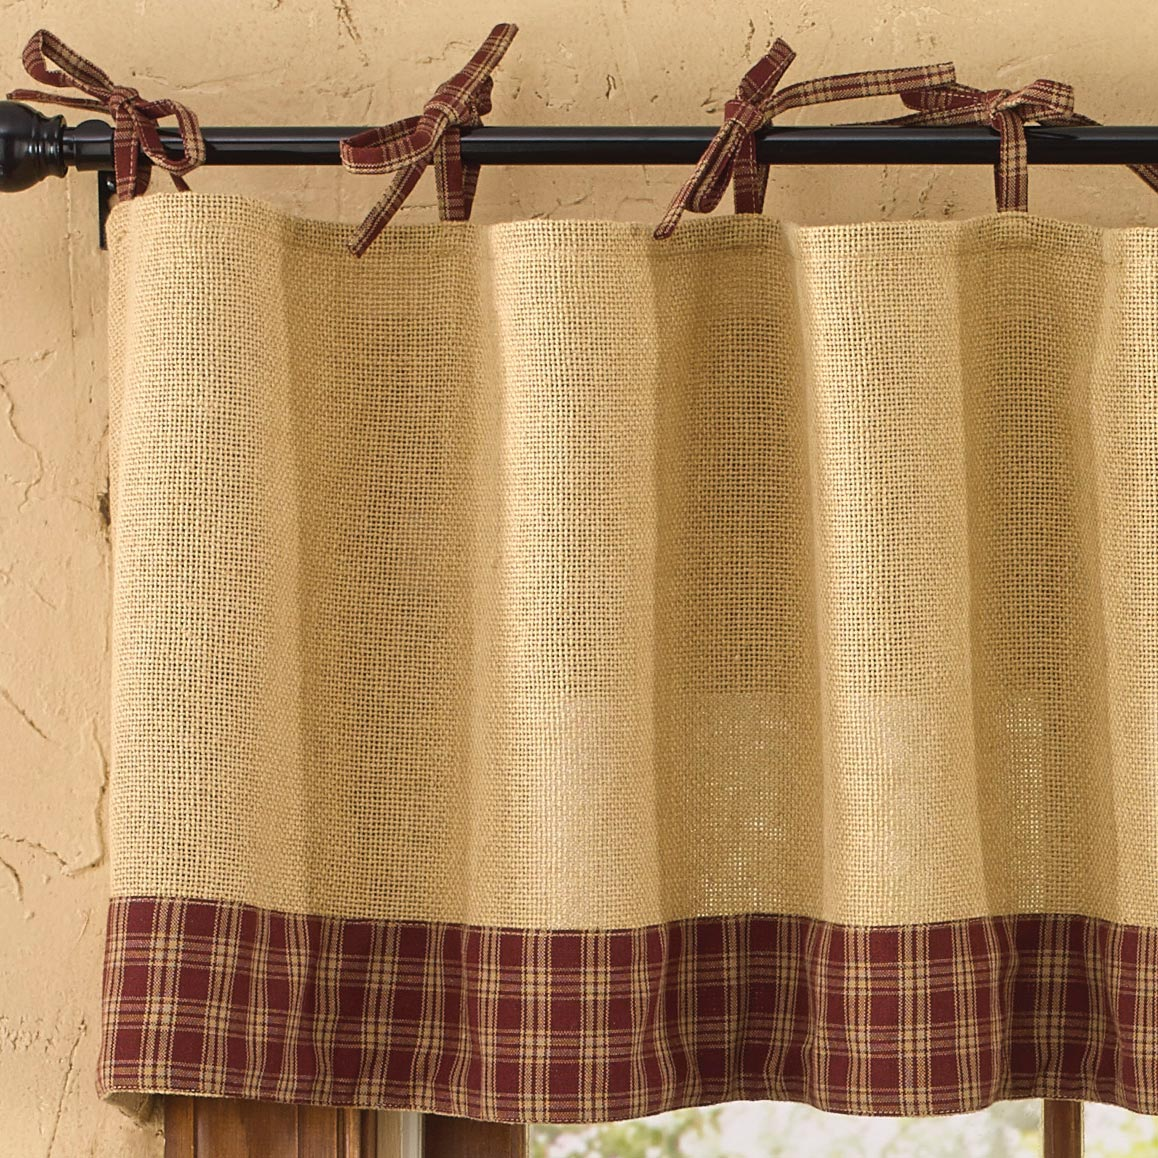 PKD-313-47K-Sturbridge-Wine-Burlap-and-Tie-Valance-LRG